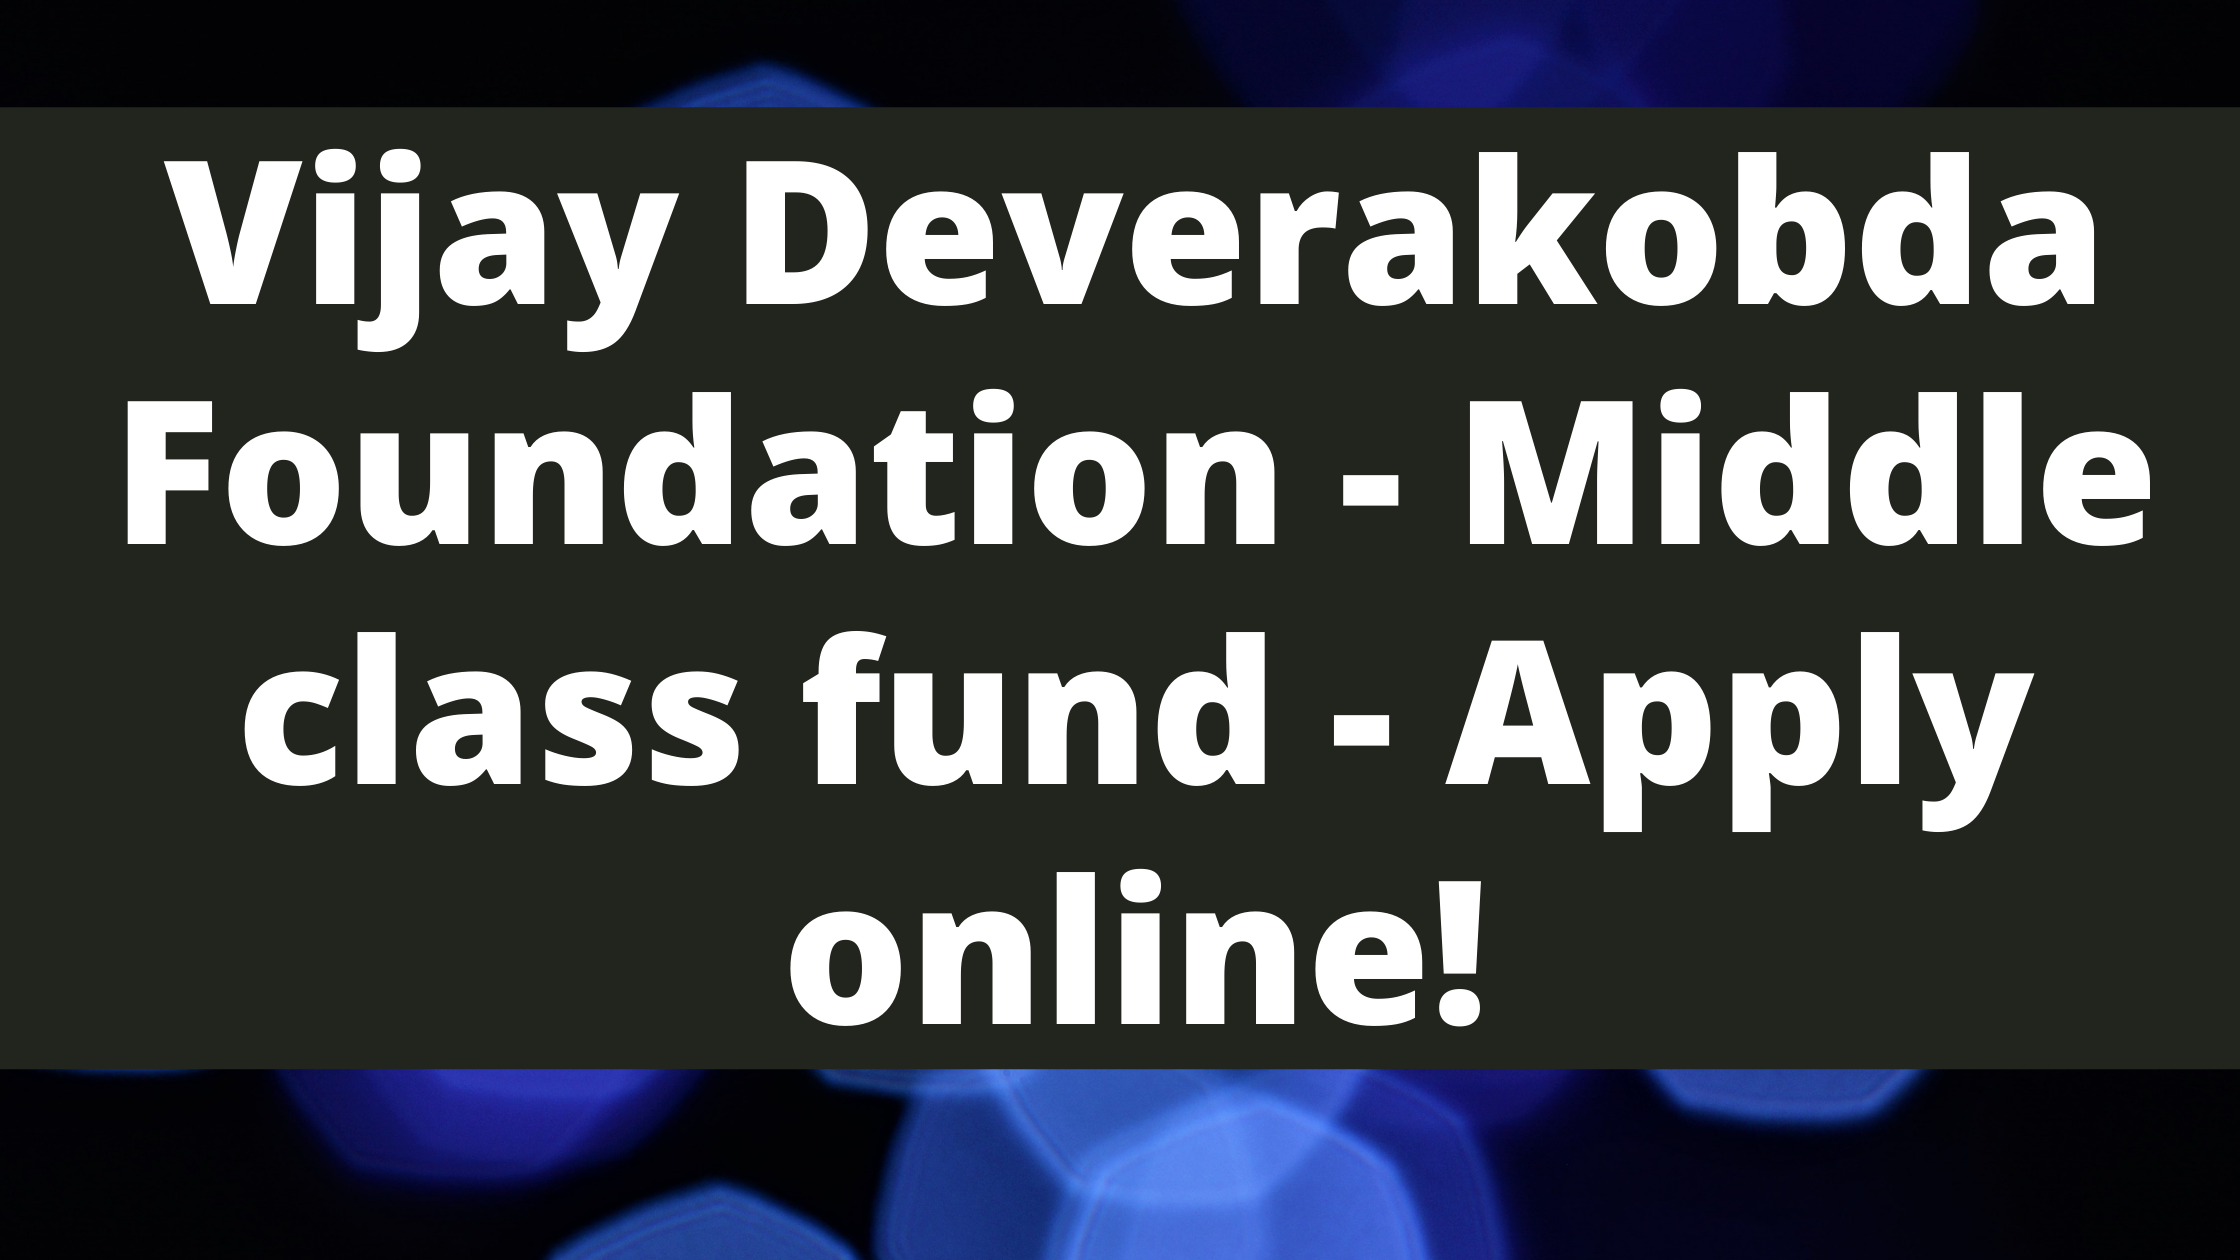 Vijay Deverakobda Foundation